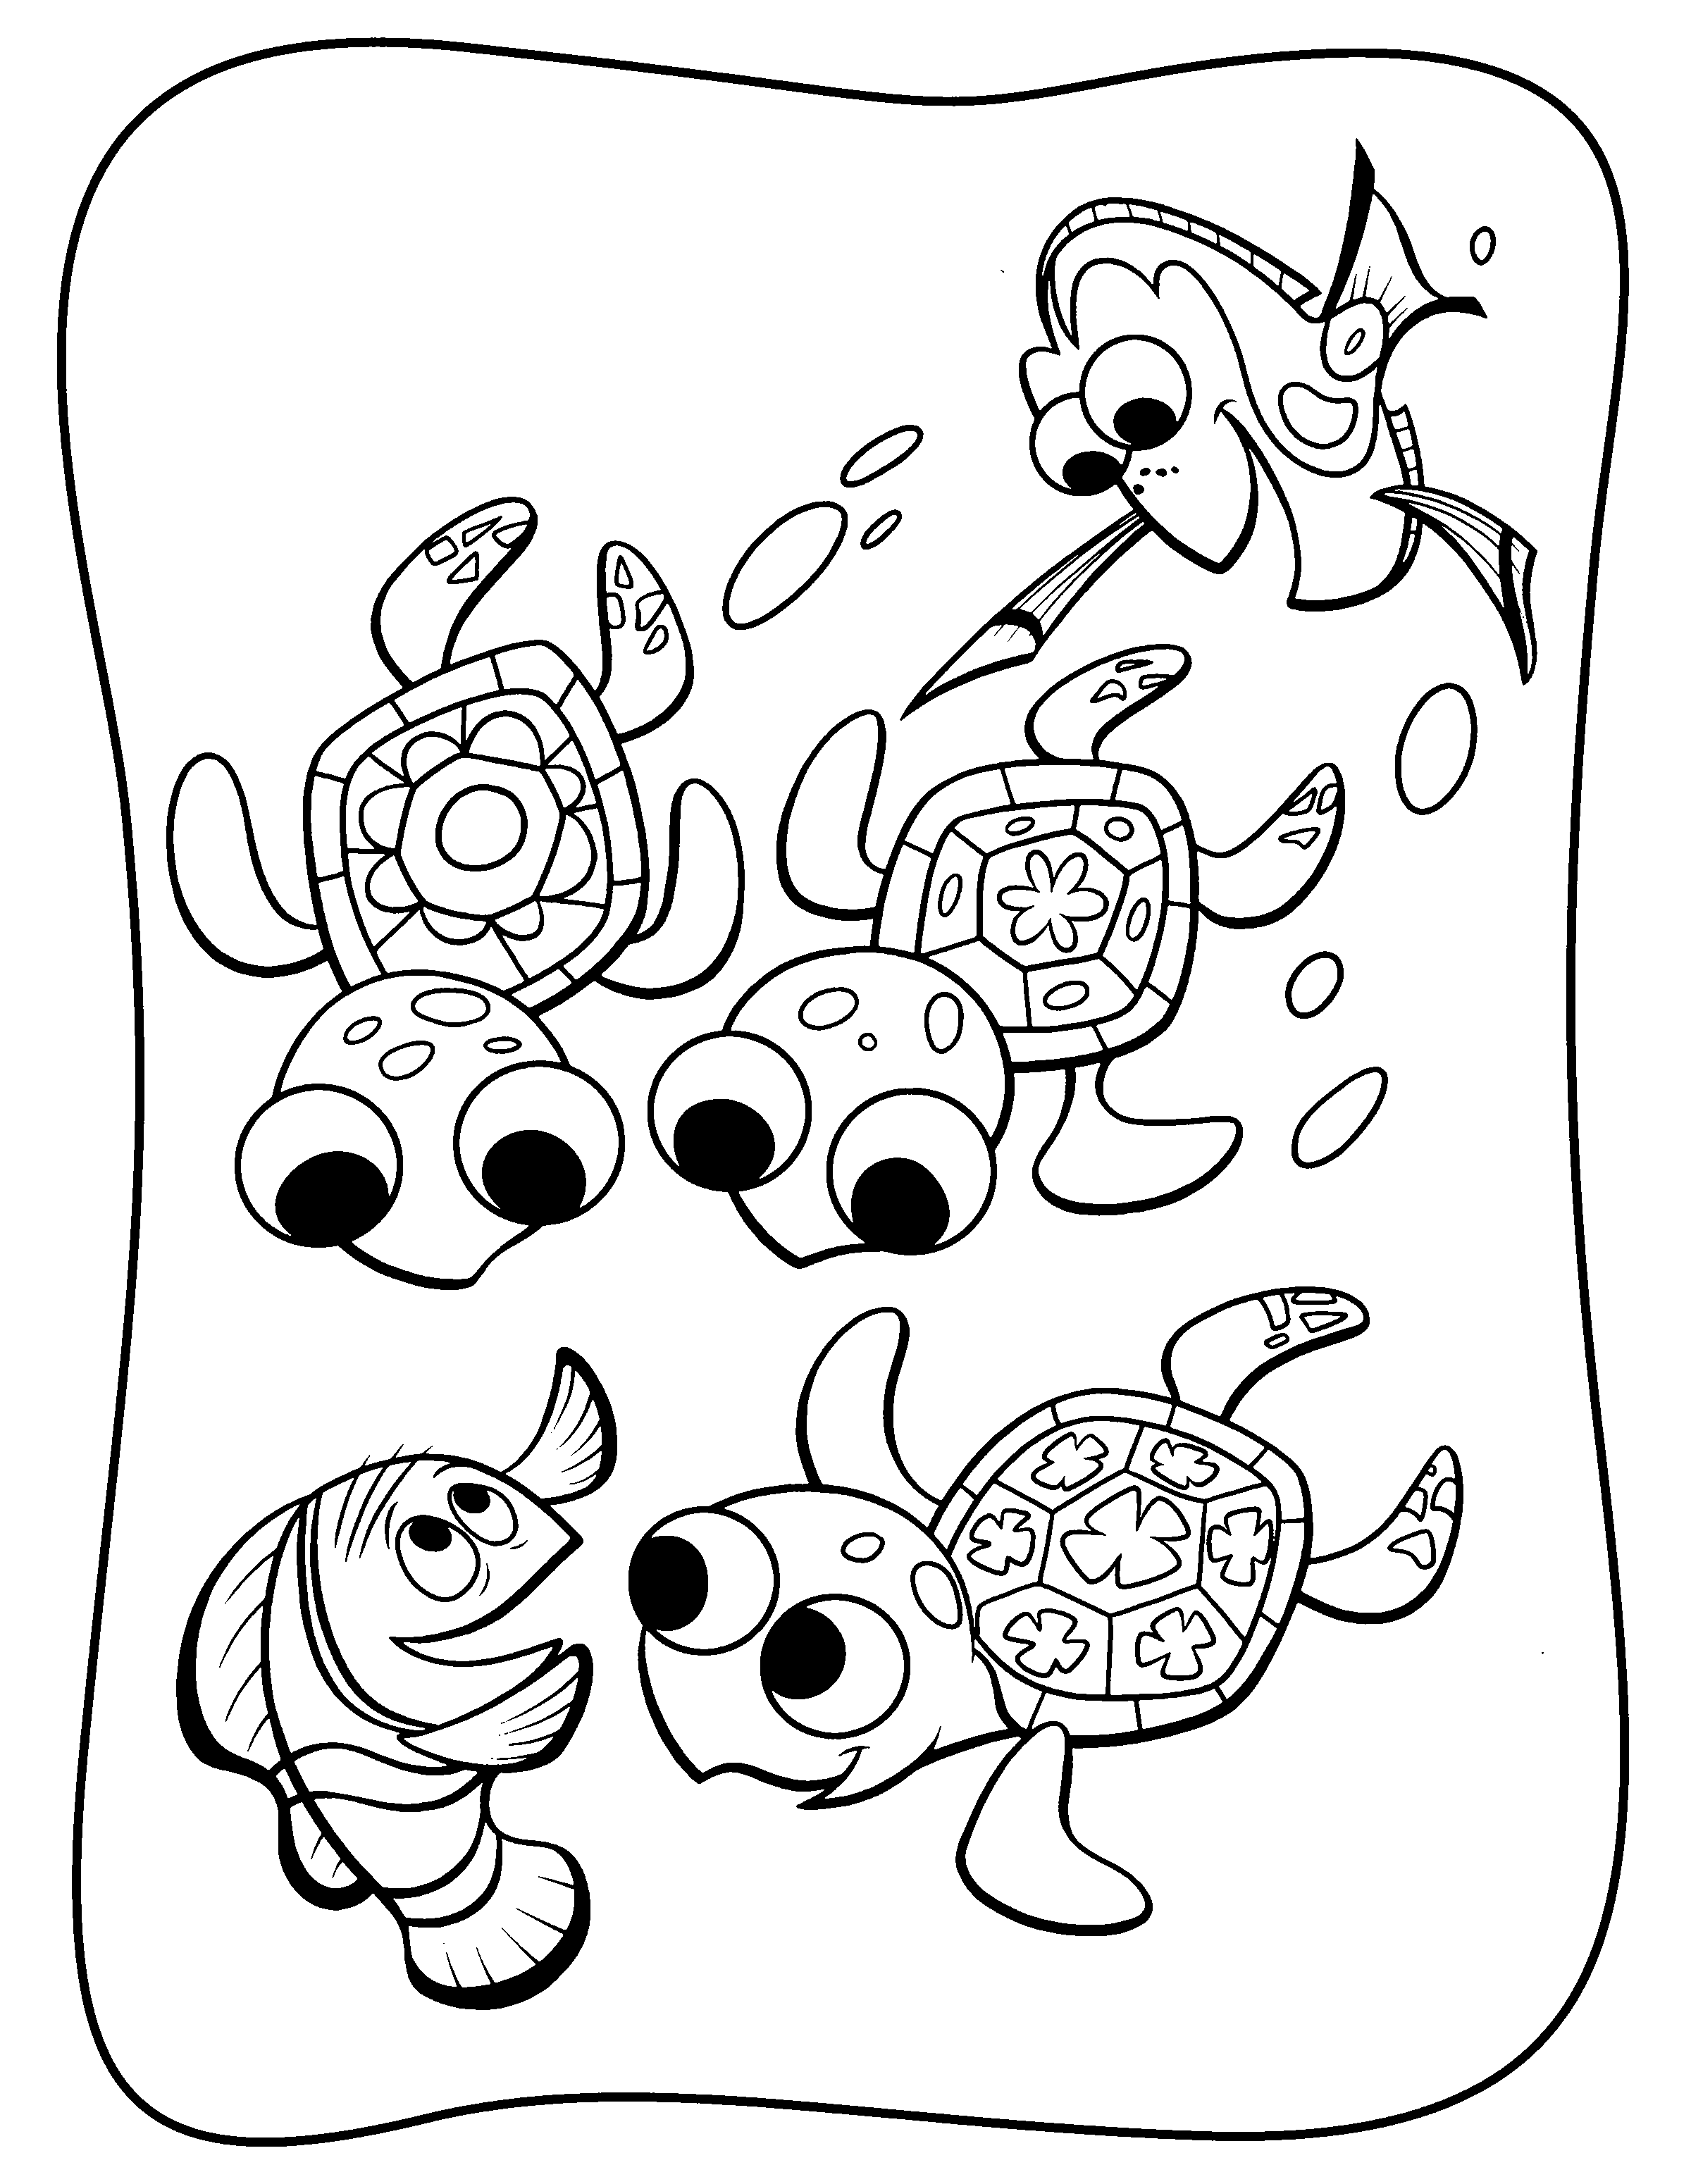 coloring pages of a - photo#21